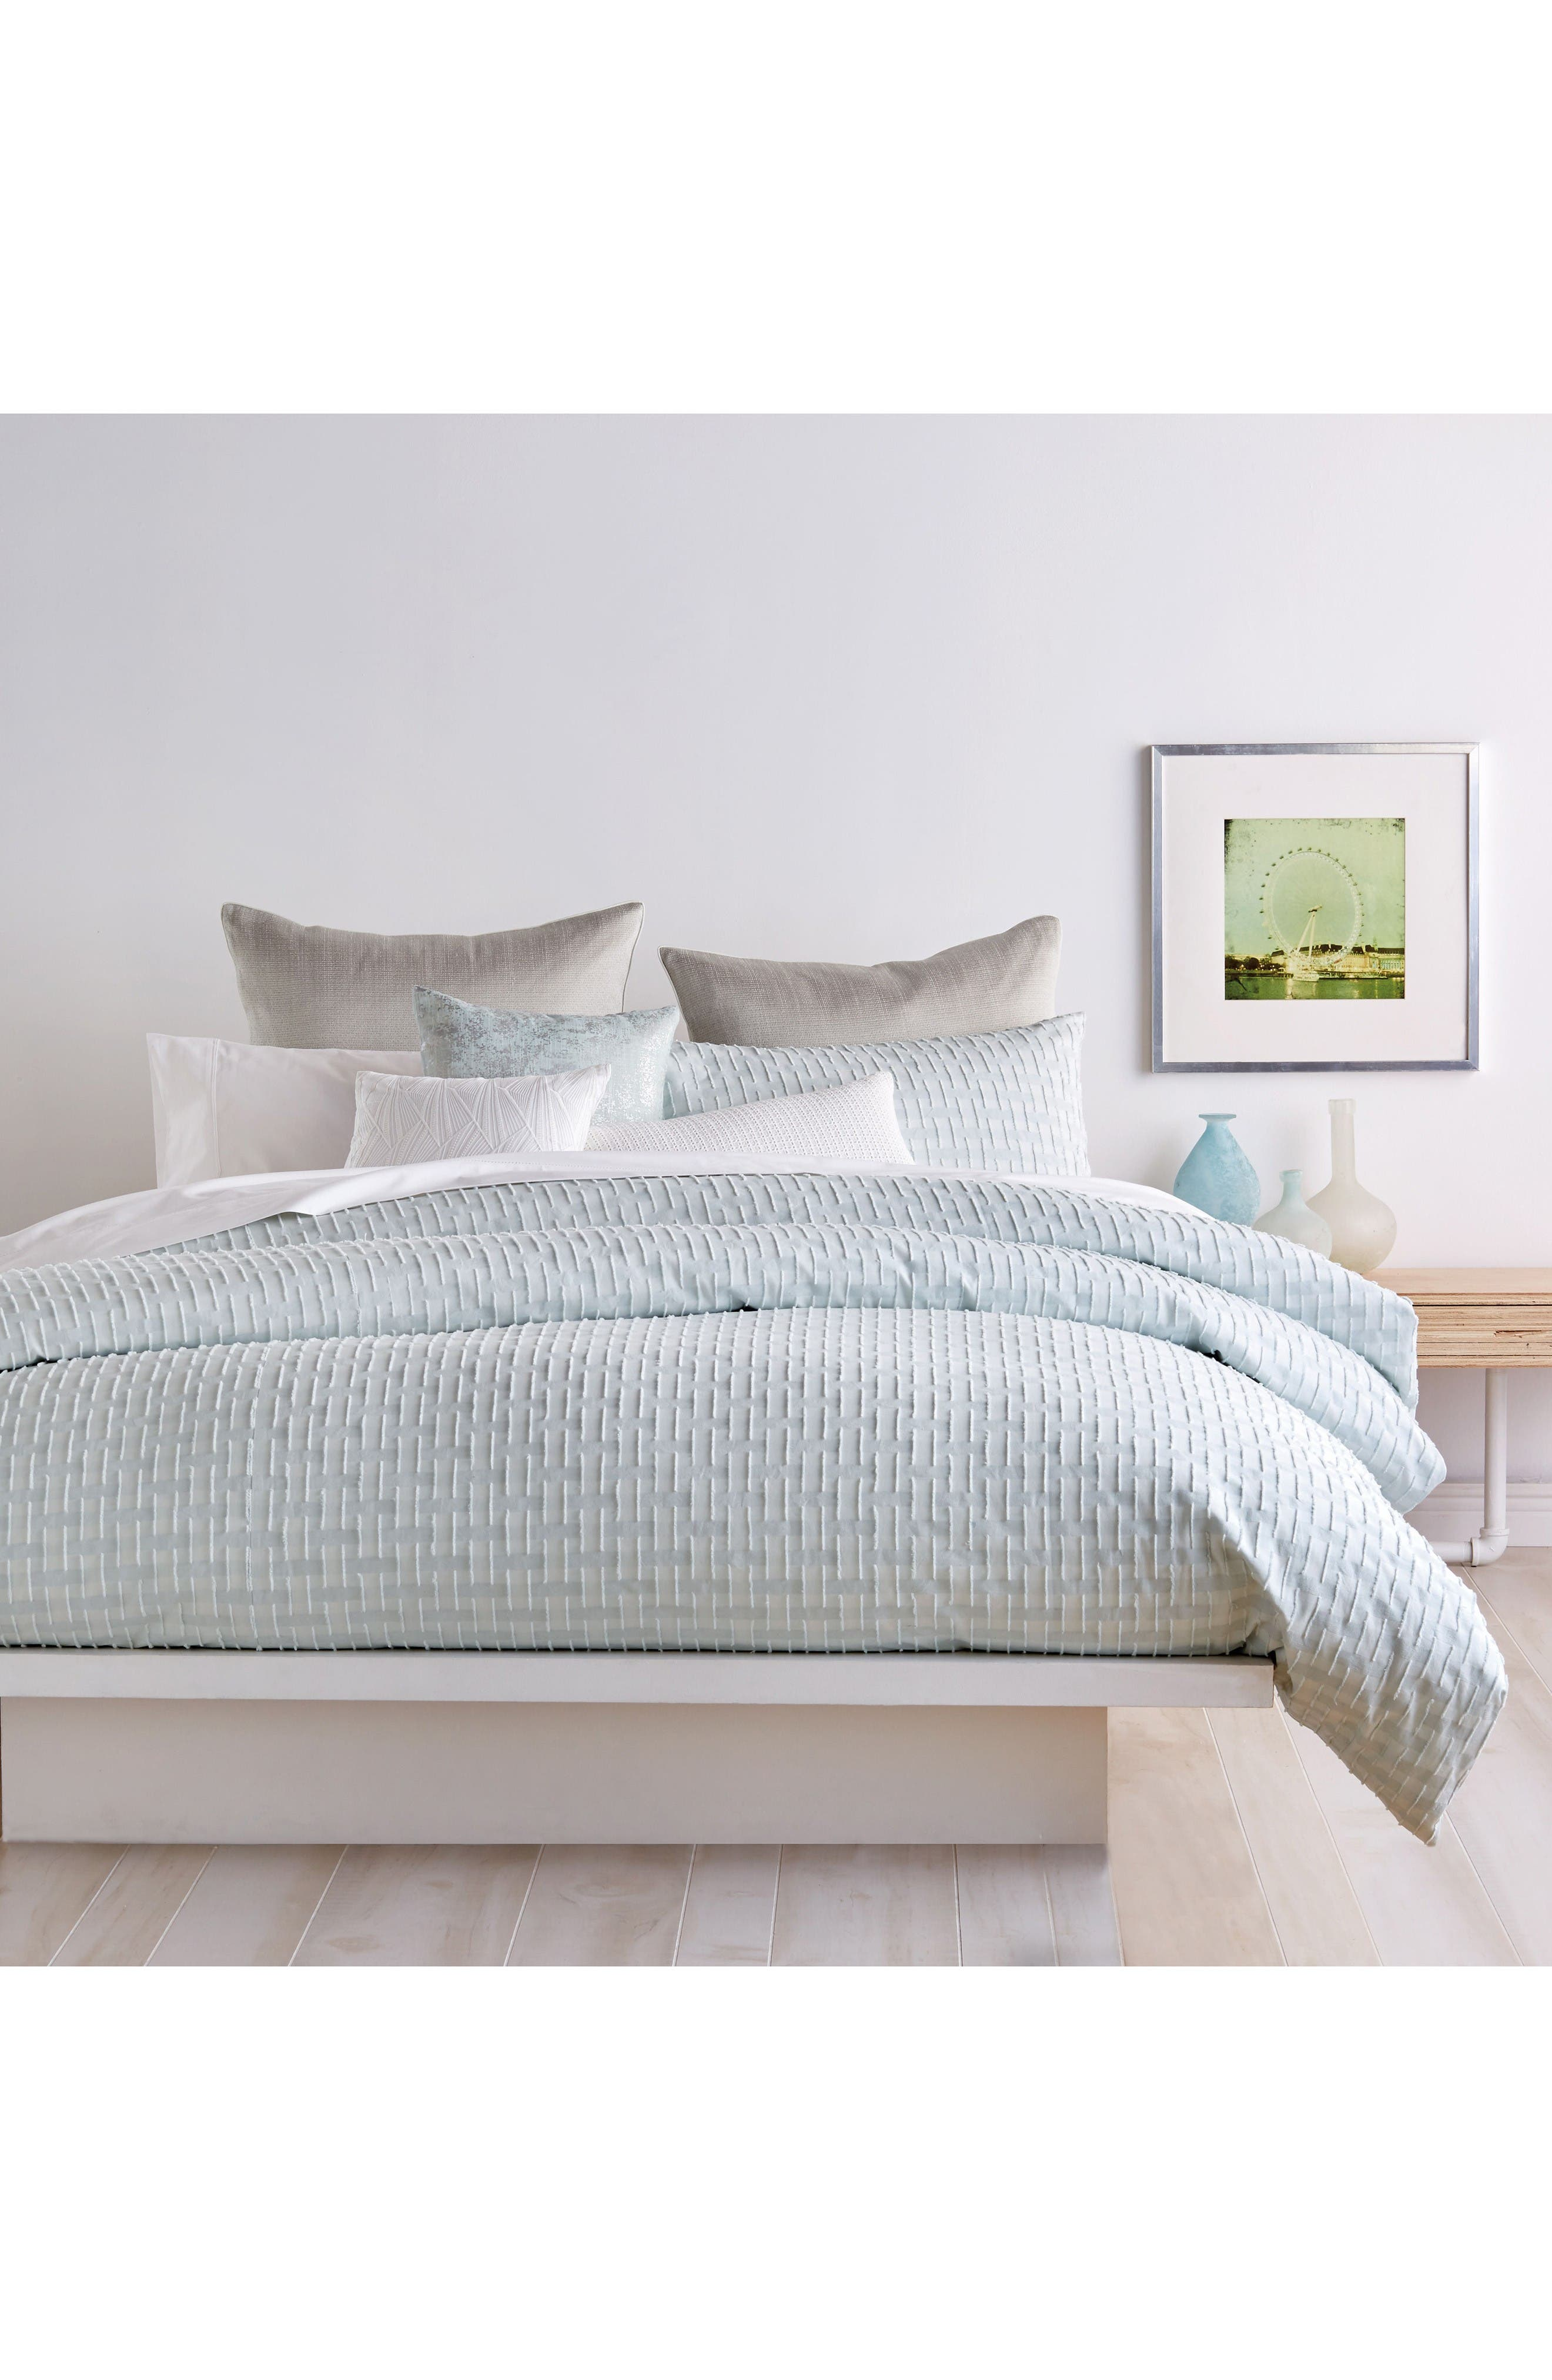 DKNY Refresh Duvet Cover